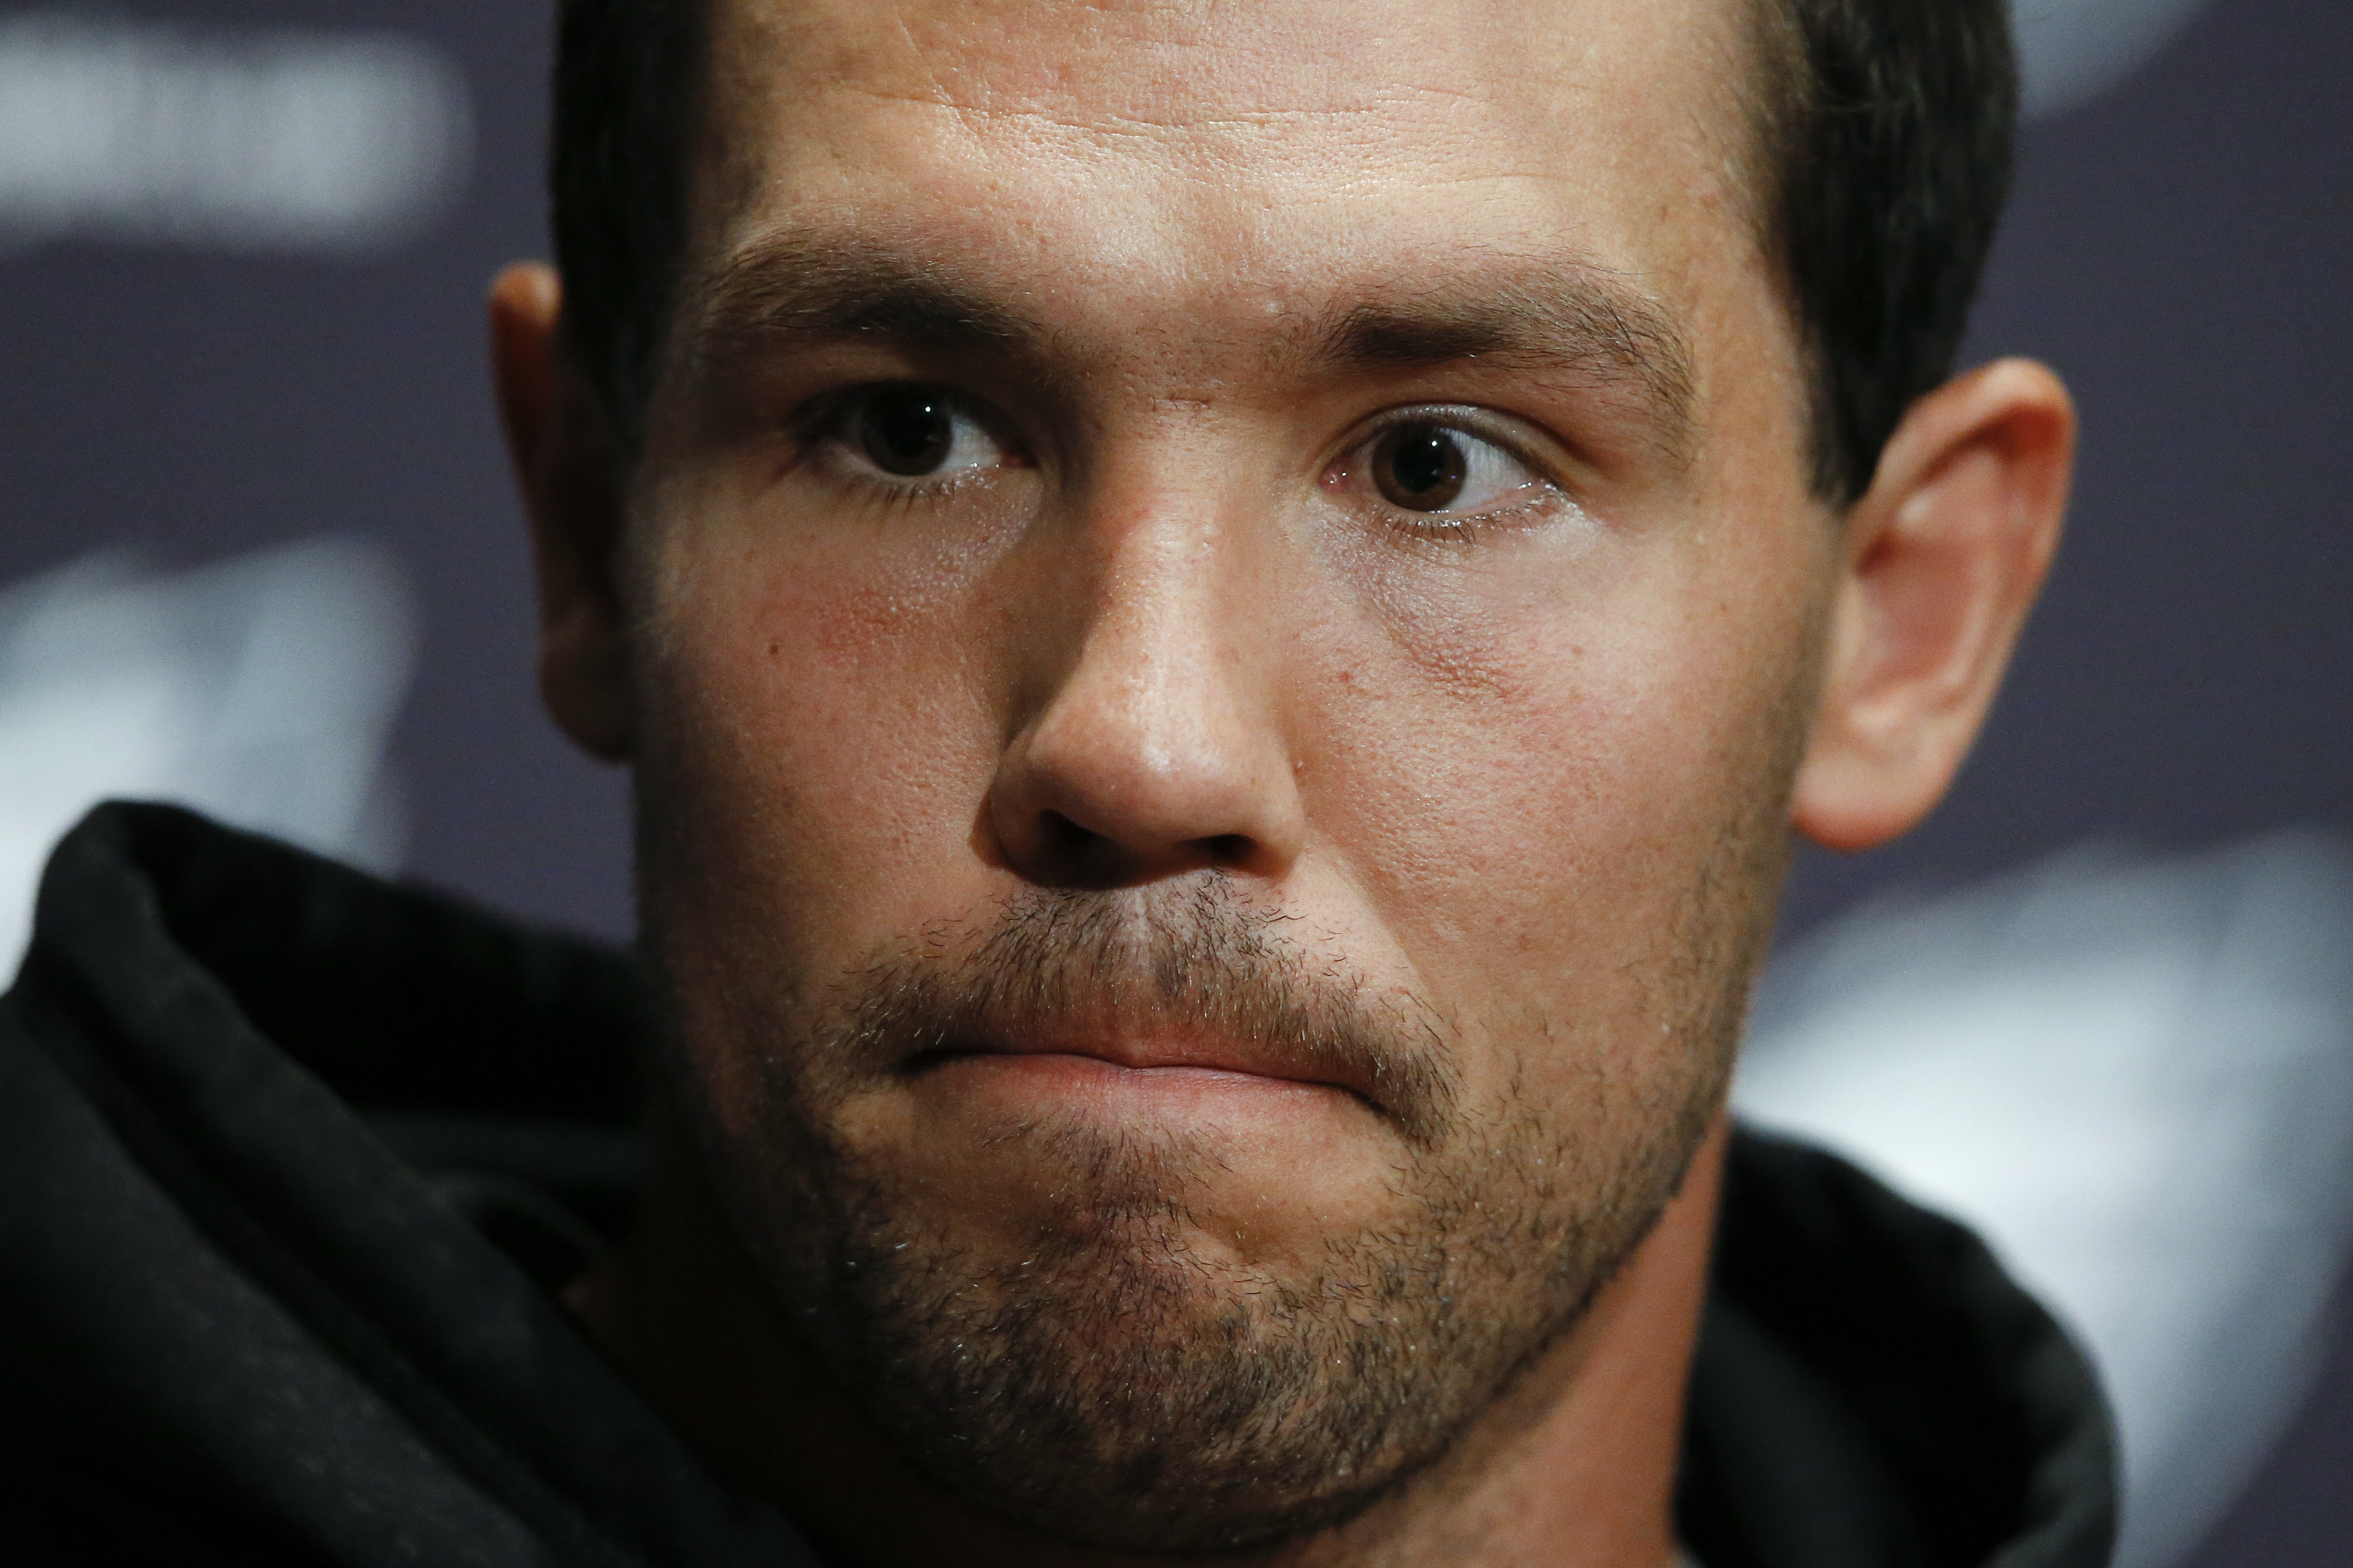 Philadelphia Eagles quarterback Sam Bradford speaks with members of the media during a news conference at the team's NFL football training facility, Tuesday, May 17, 2016, in Philadelphia. (AP Photo/Matt Rourke)